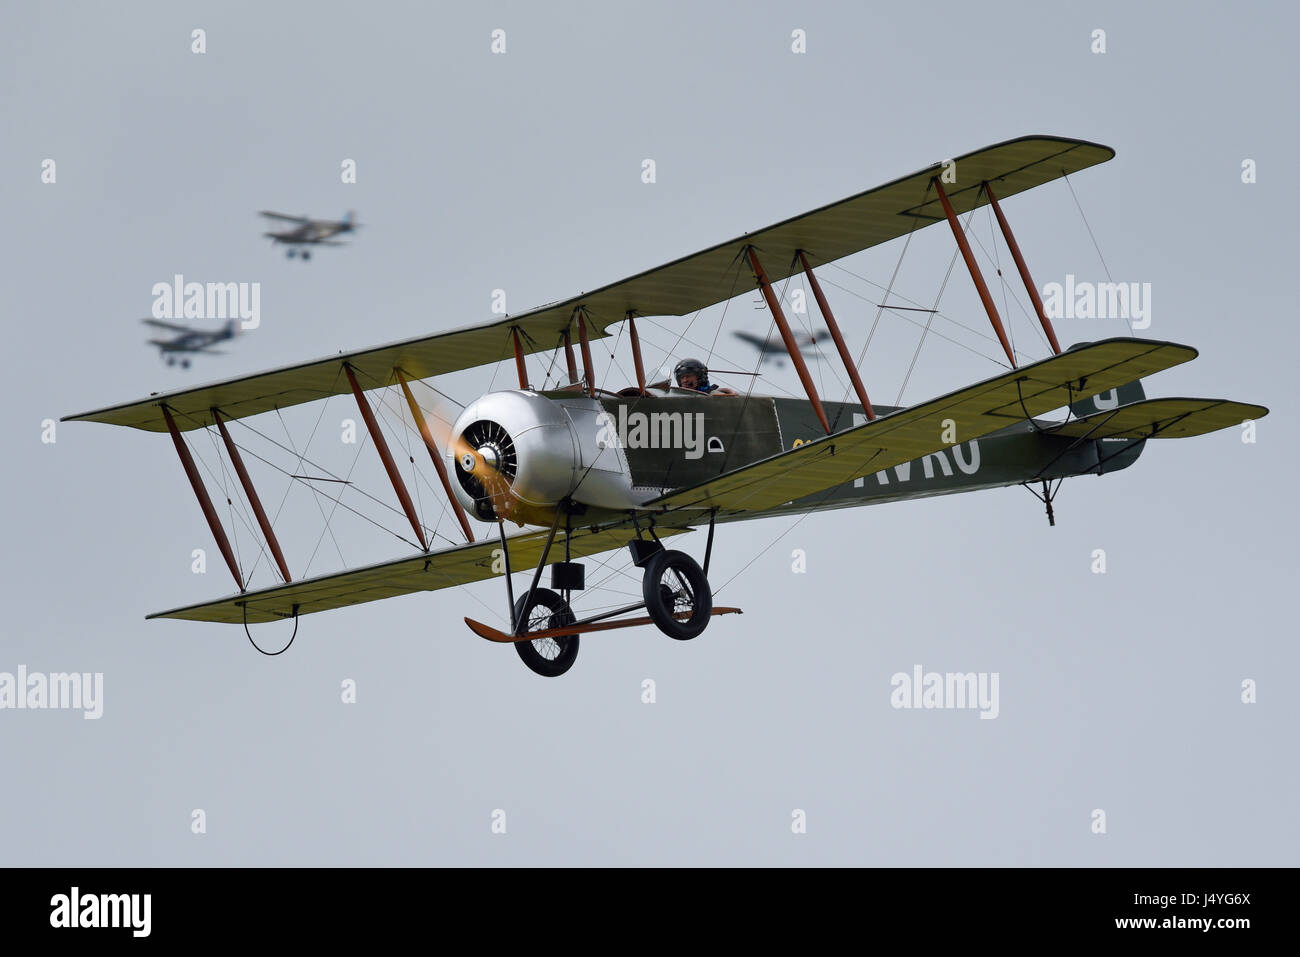 avro-504-of-the-great-war-display-team-at-the-abingdon-air-country-J4YG6X.jpg